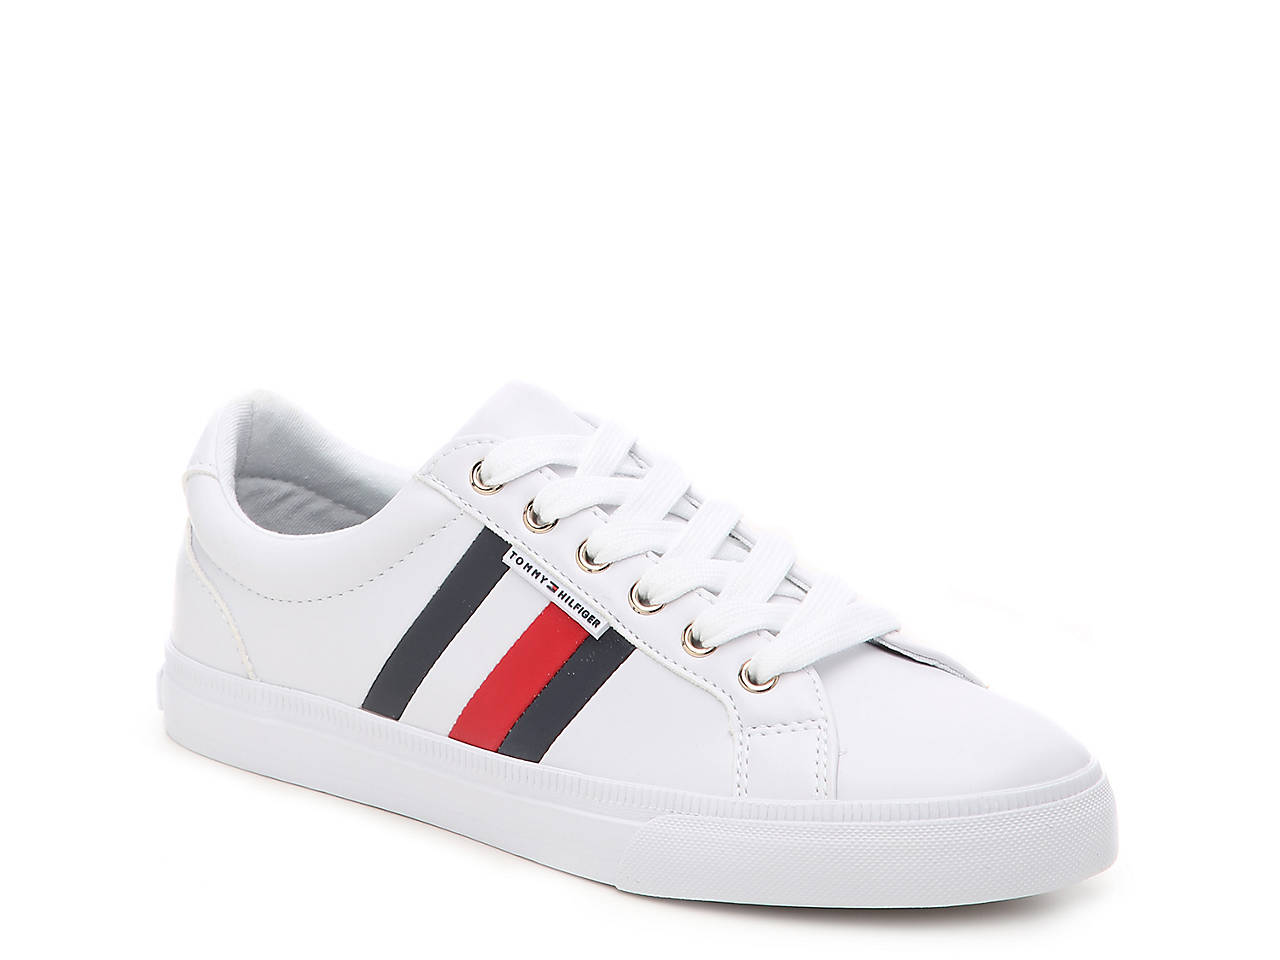 68d912c3a Tommy Hilfiger Lightz Sneaker Women s Shoes